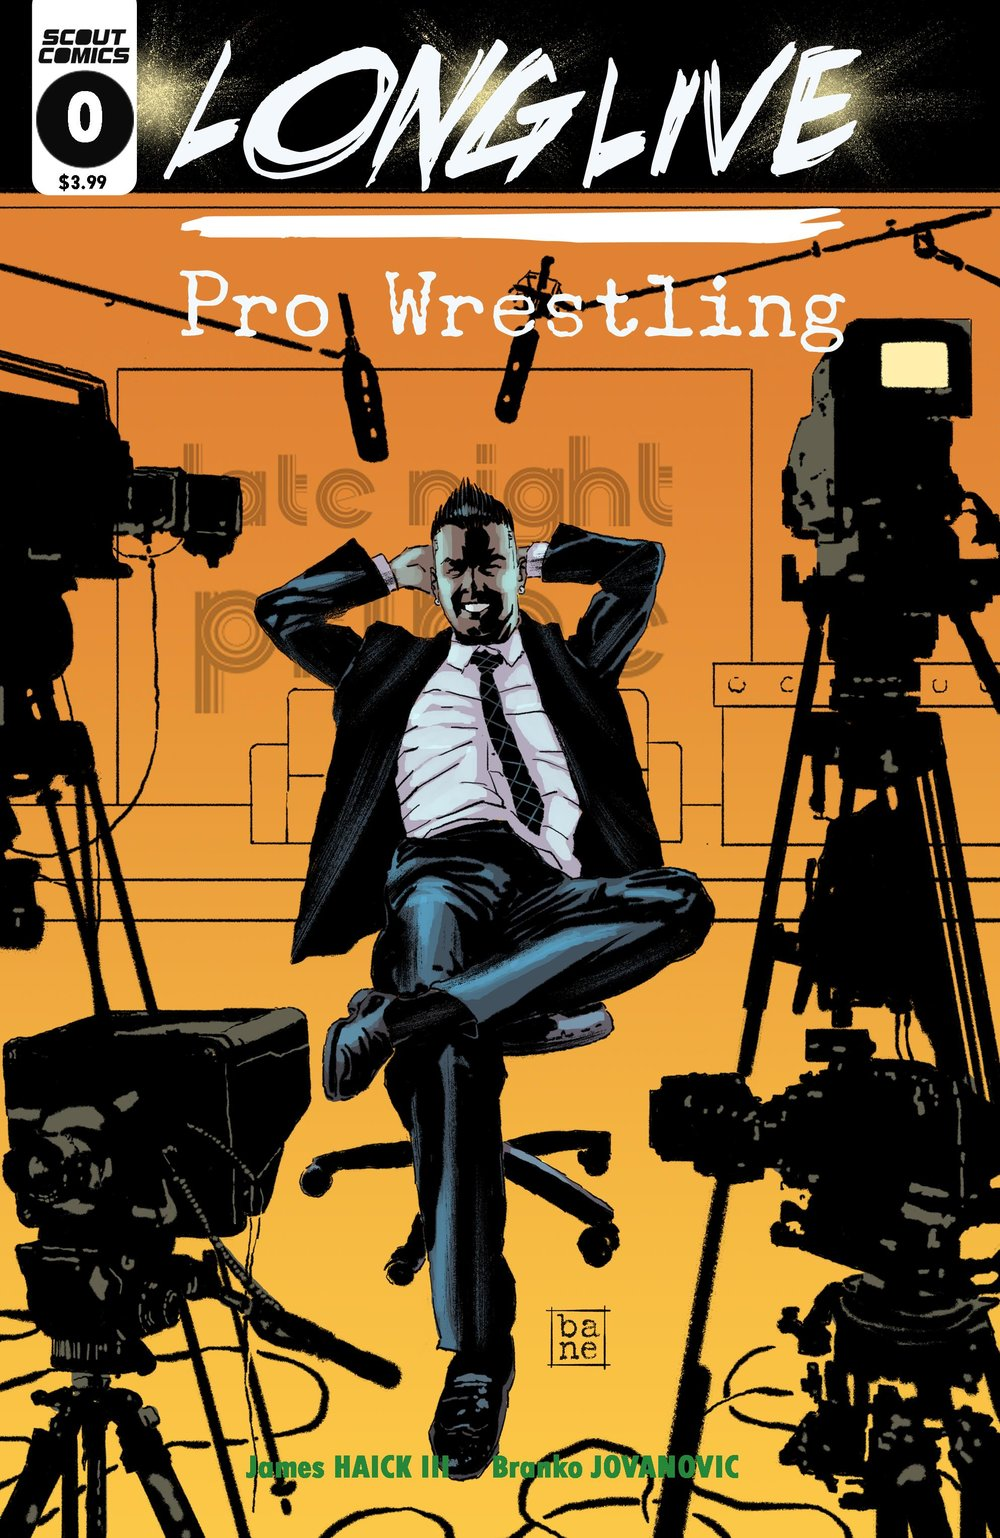 Long Live Pro Wrestling 0 cover new.jpg